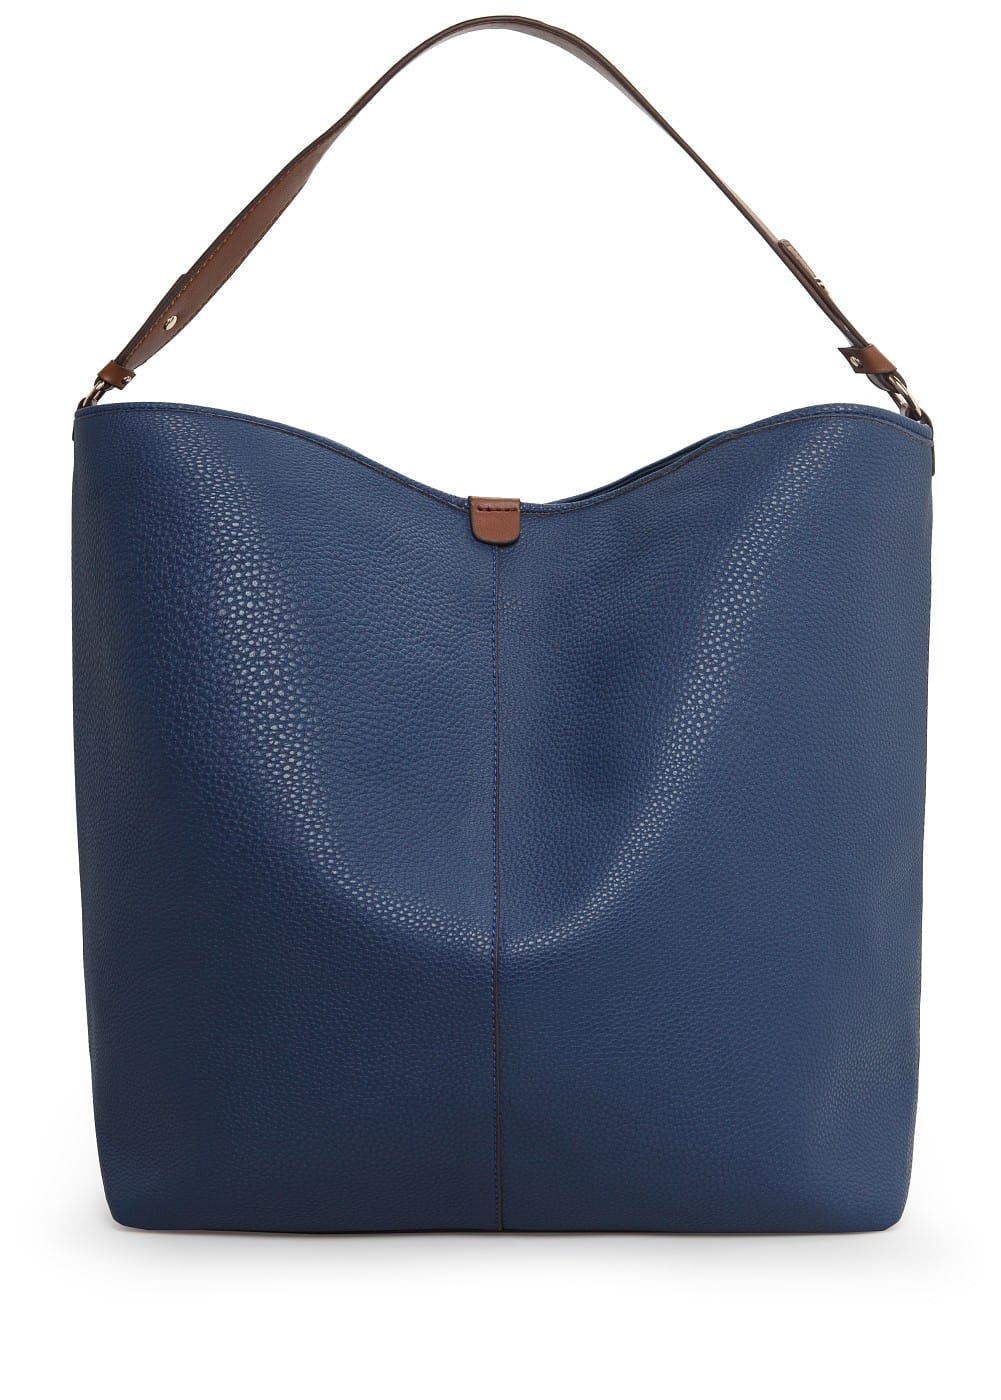 Pebbled shoulder bag